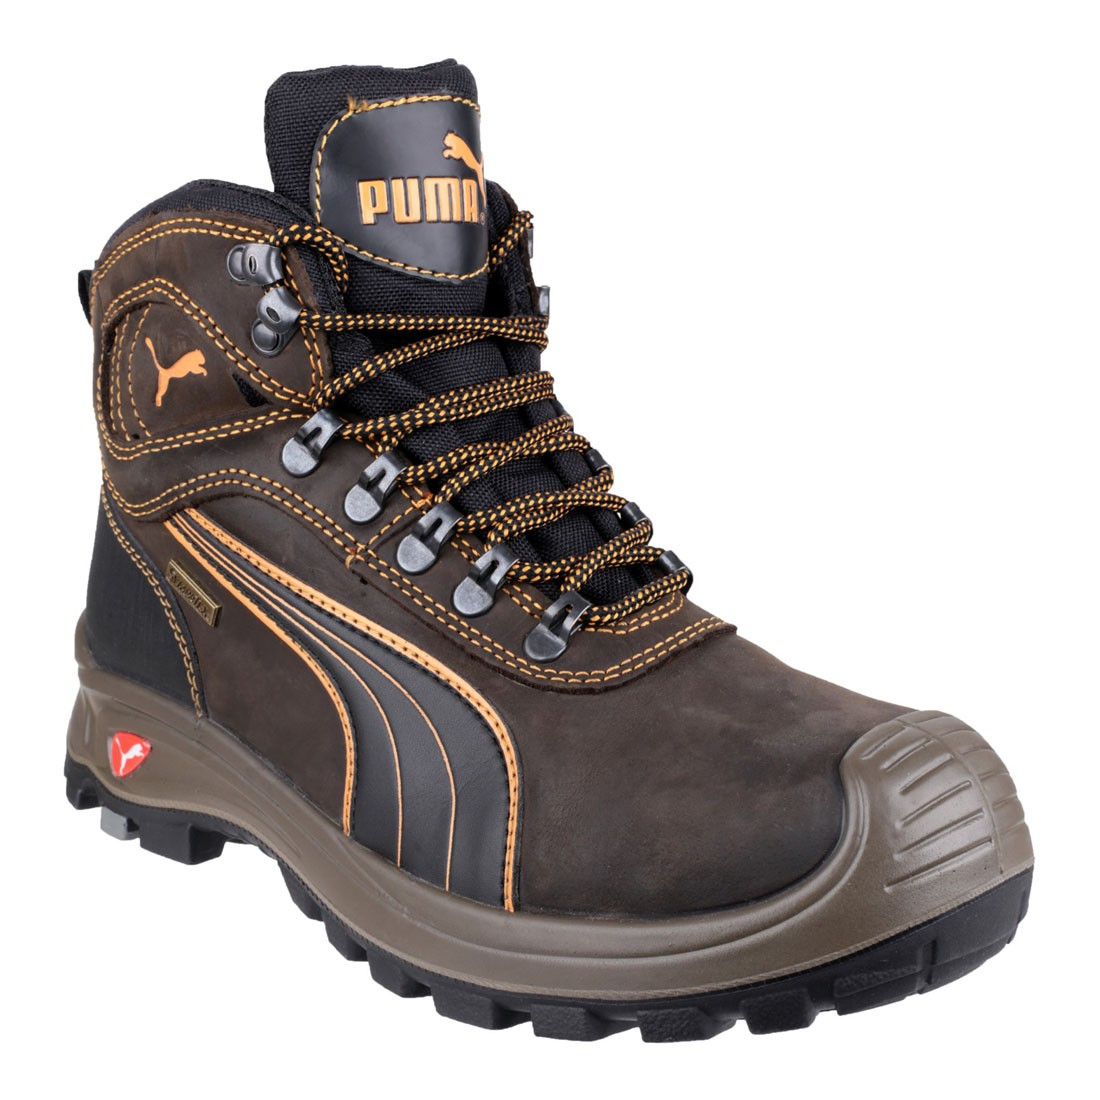 Puma Safety Boots Sierra Nevada Mid Brown Waterproof  Hiker Style Boots